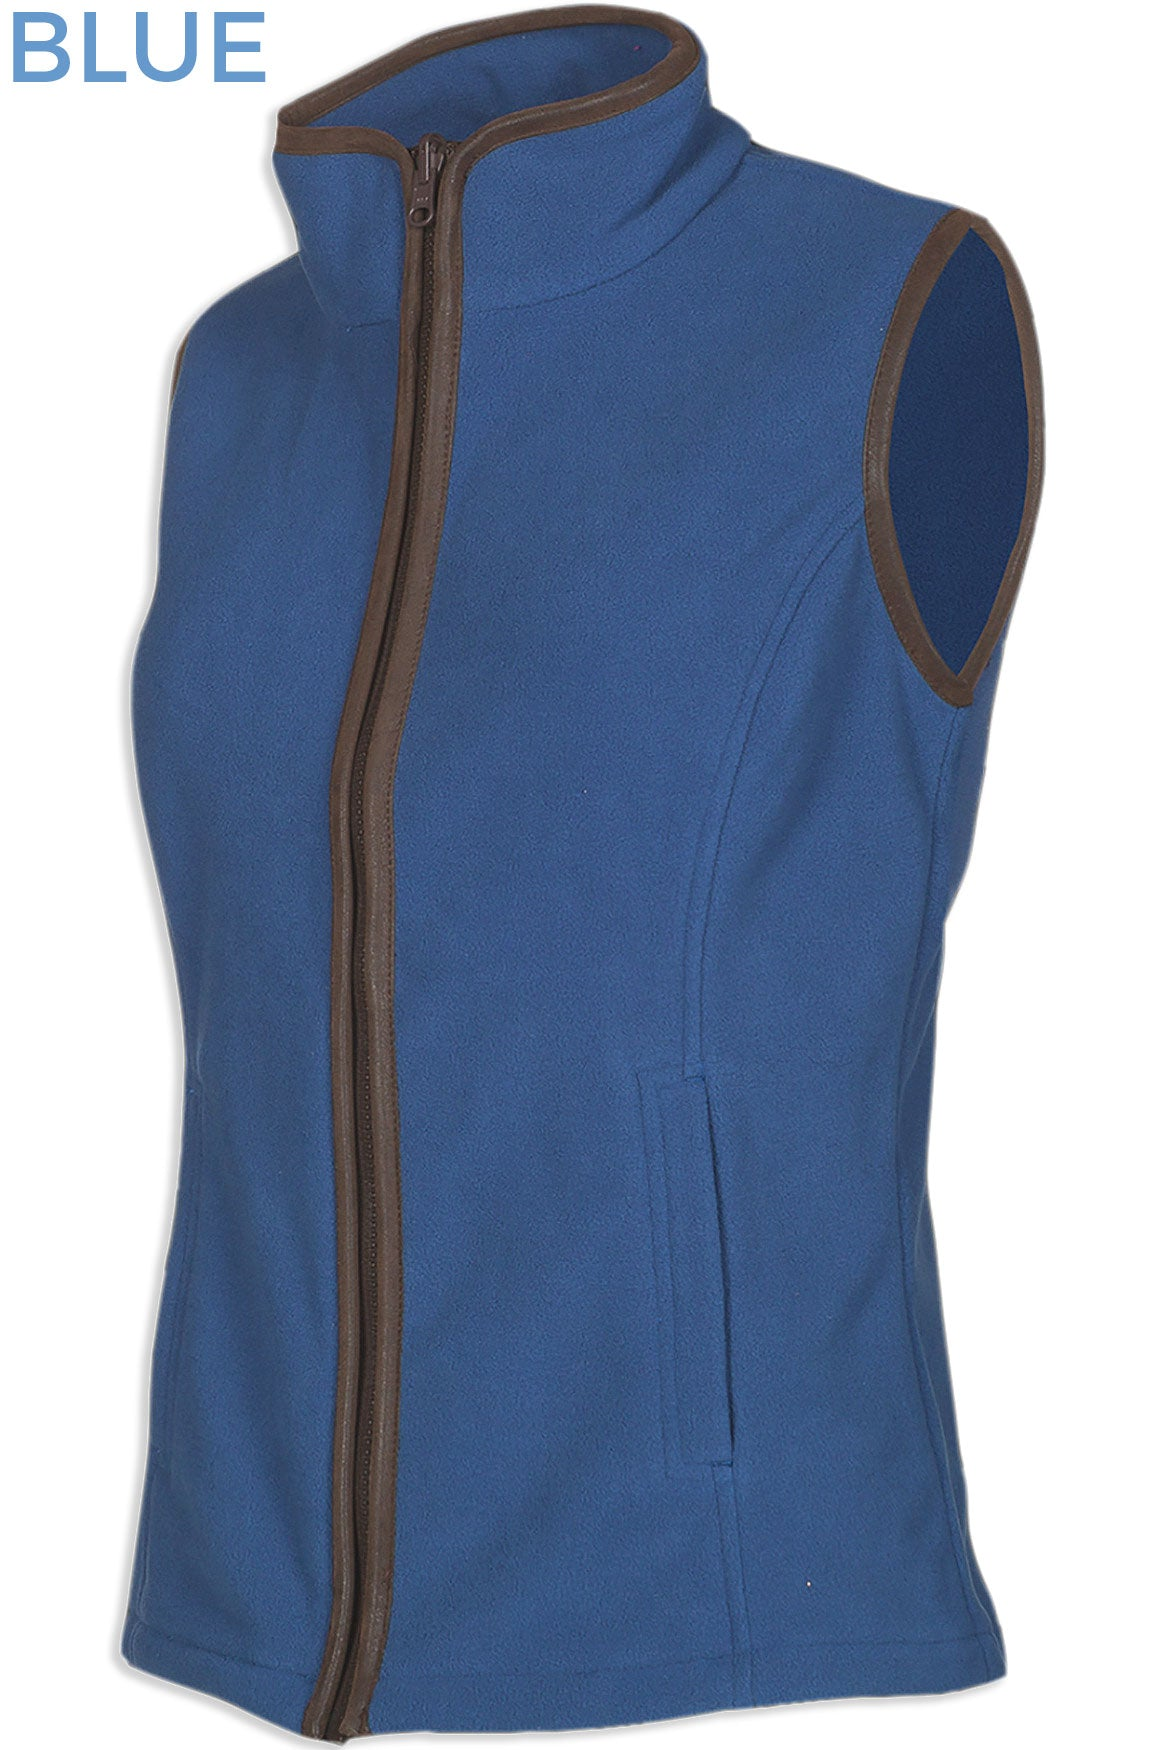 Sally Fleece Gilet in Blue